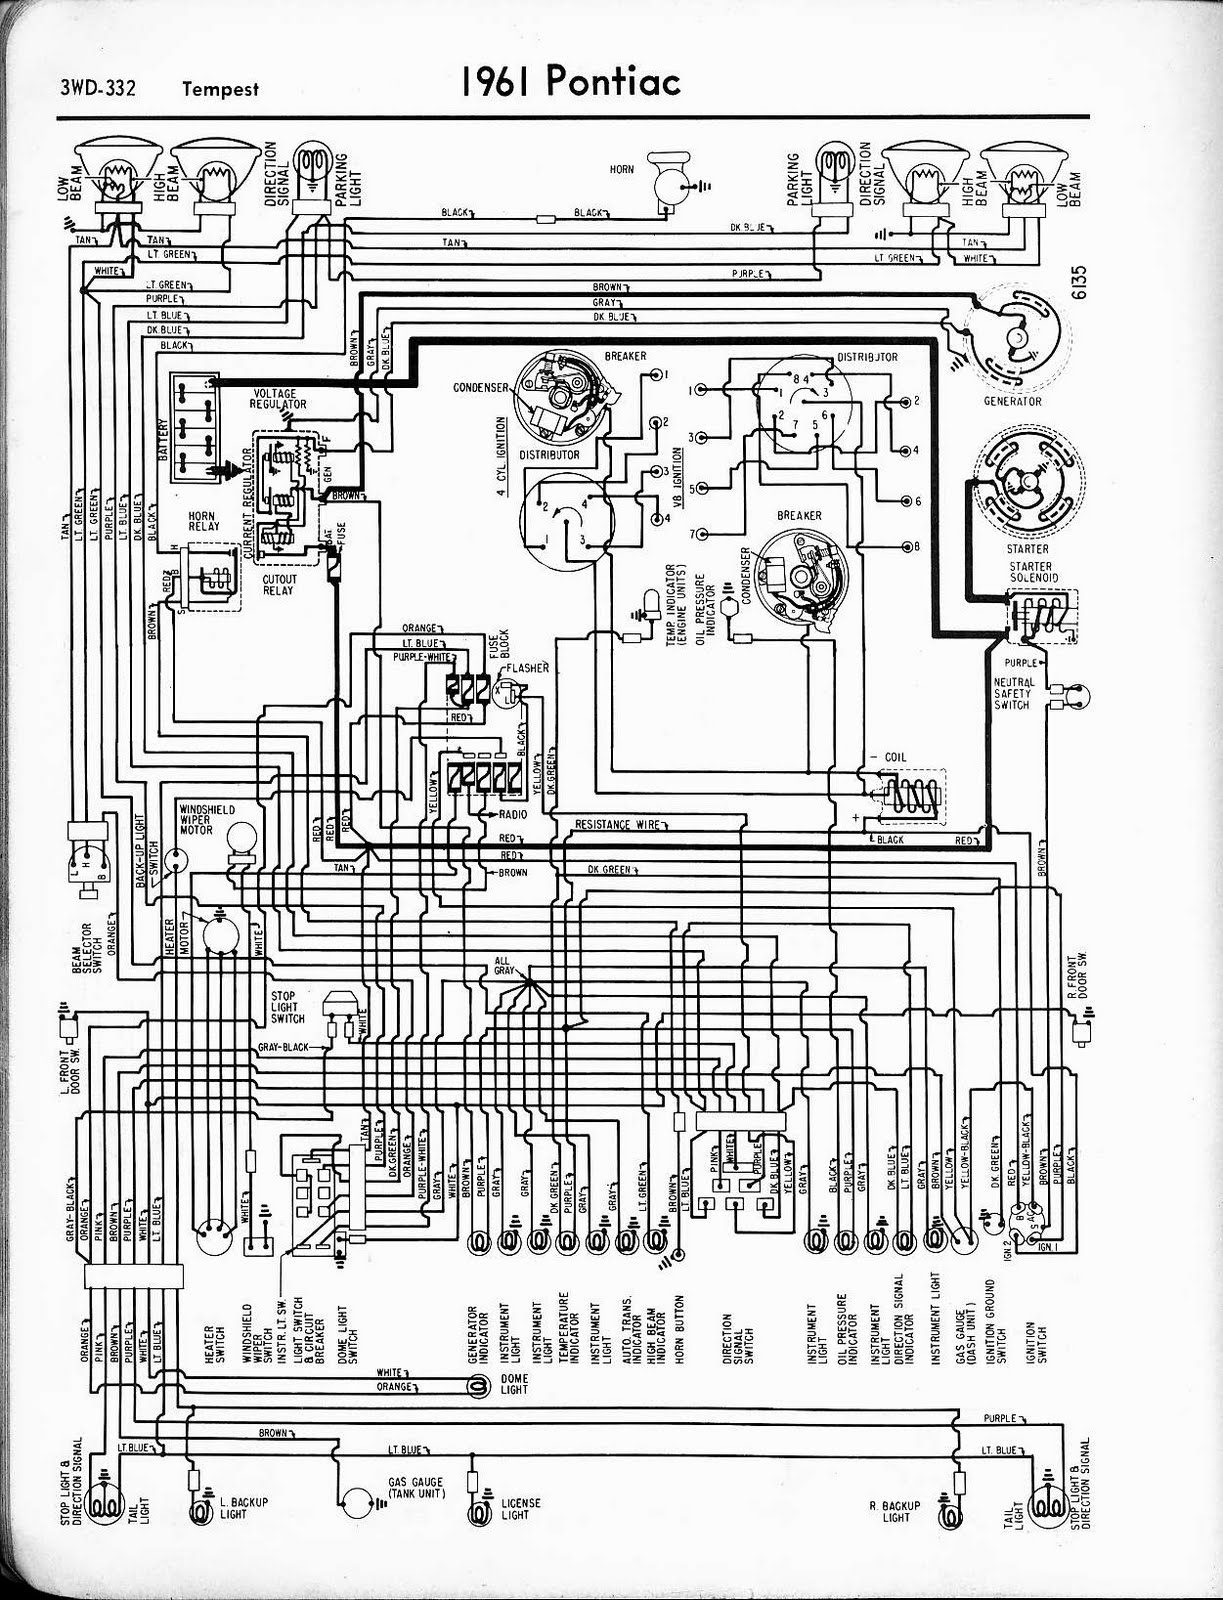 Discussion C10092 ds514831 furthermore 49 54 Chevy Passenger Car Chassis Diagram furthermore 1980 Chevy Camaro 350 5 7 Holley Carb Hose Schematics in addition 1961 Pontiac Tempest Wiring Diagram besides 1977 Chevy Steering Column Wiring Diagram. on 1977 chevrolet nova wiring diagram